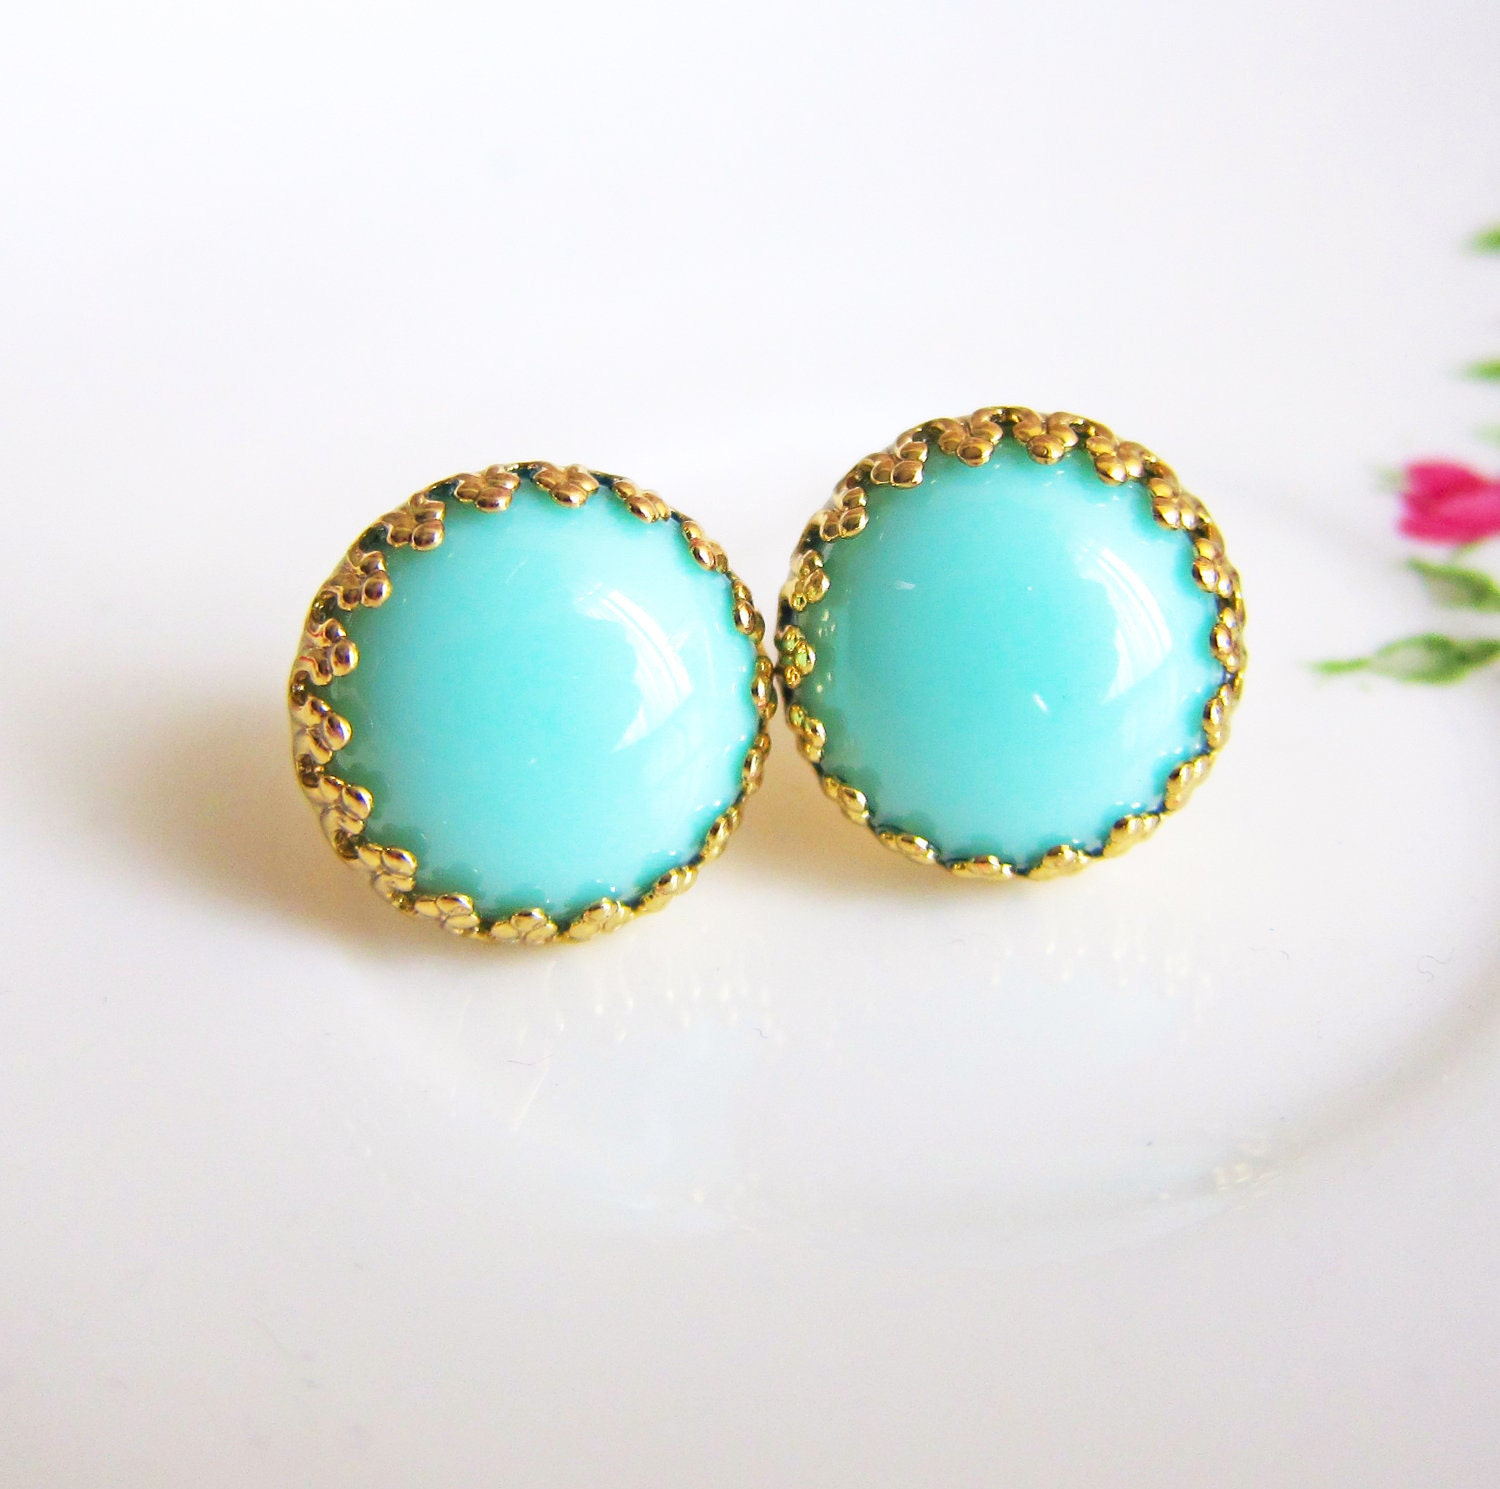 Turquoise Stud Earrings Green And Gold Earrings Aqua Studs